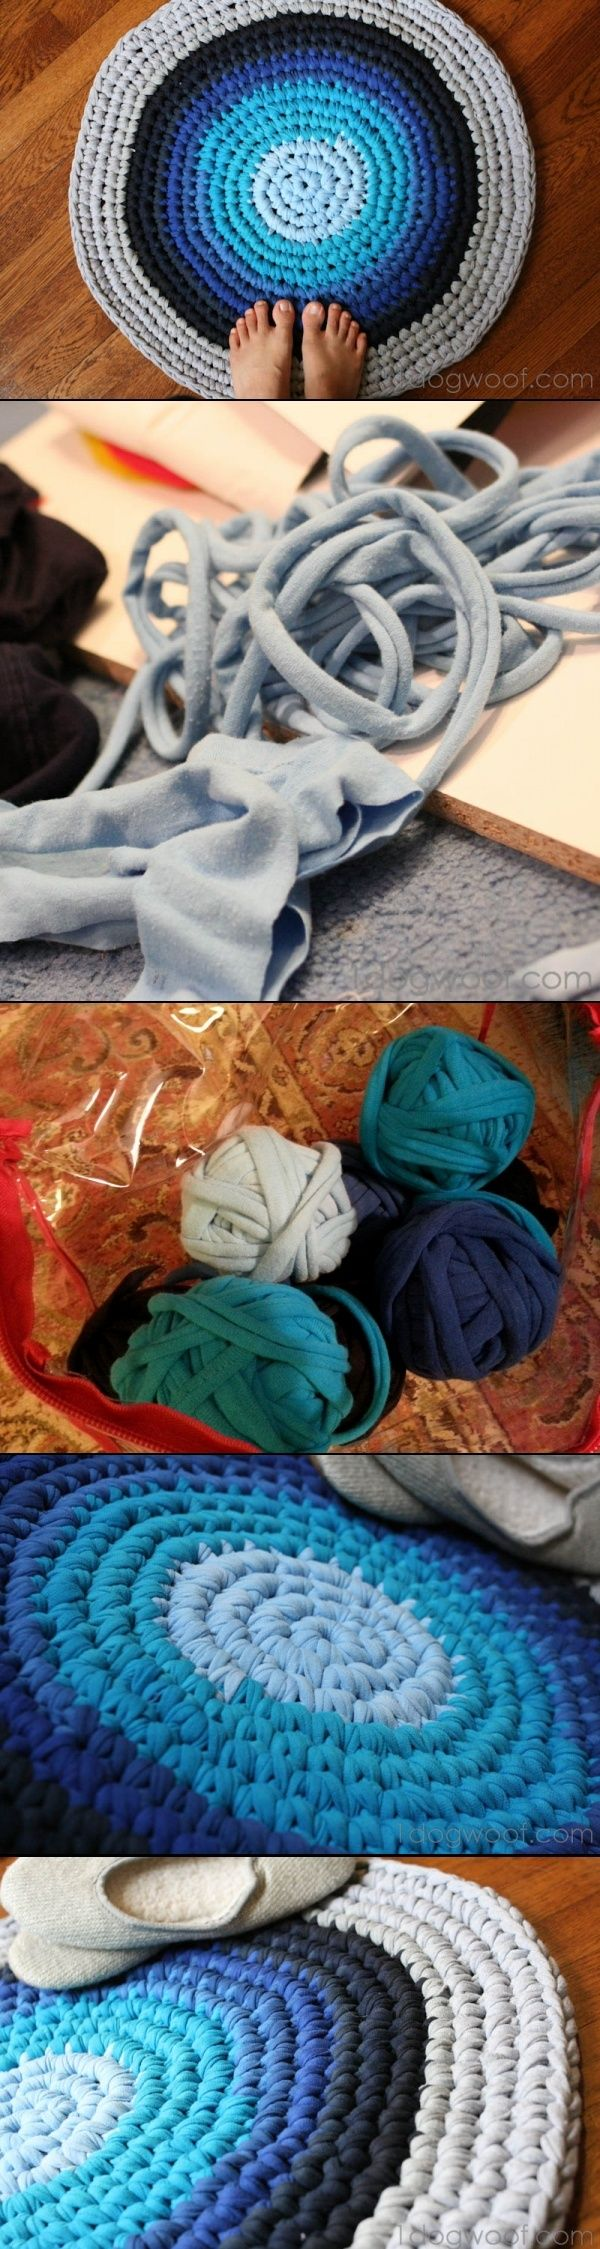 Emmy Makes: Crochet Rug from Repurposed T-shirts